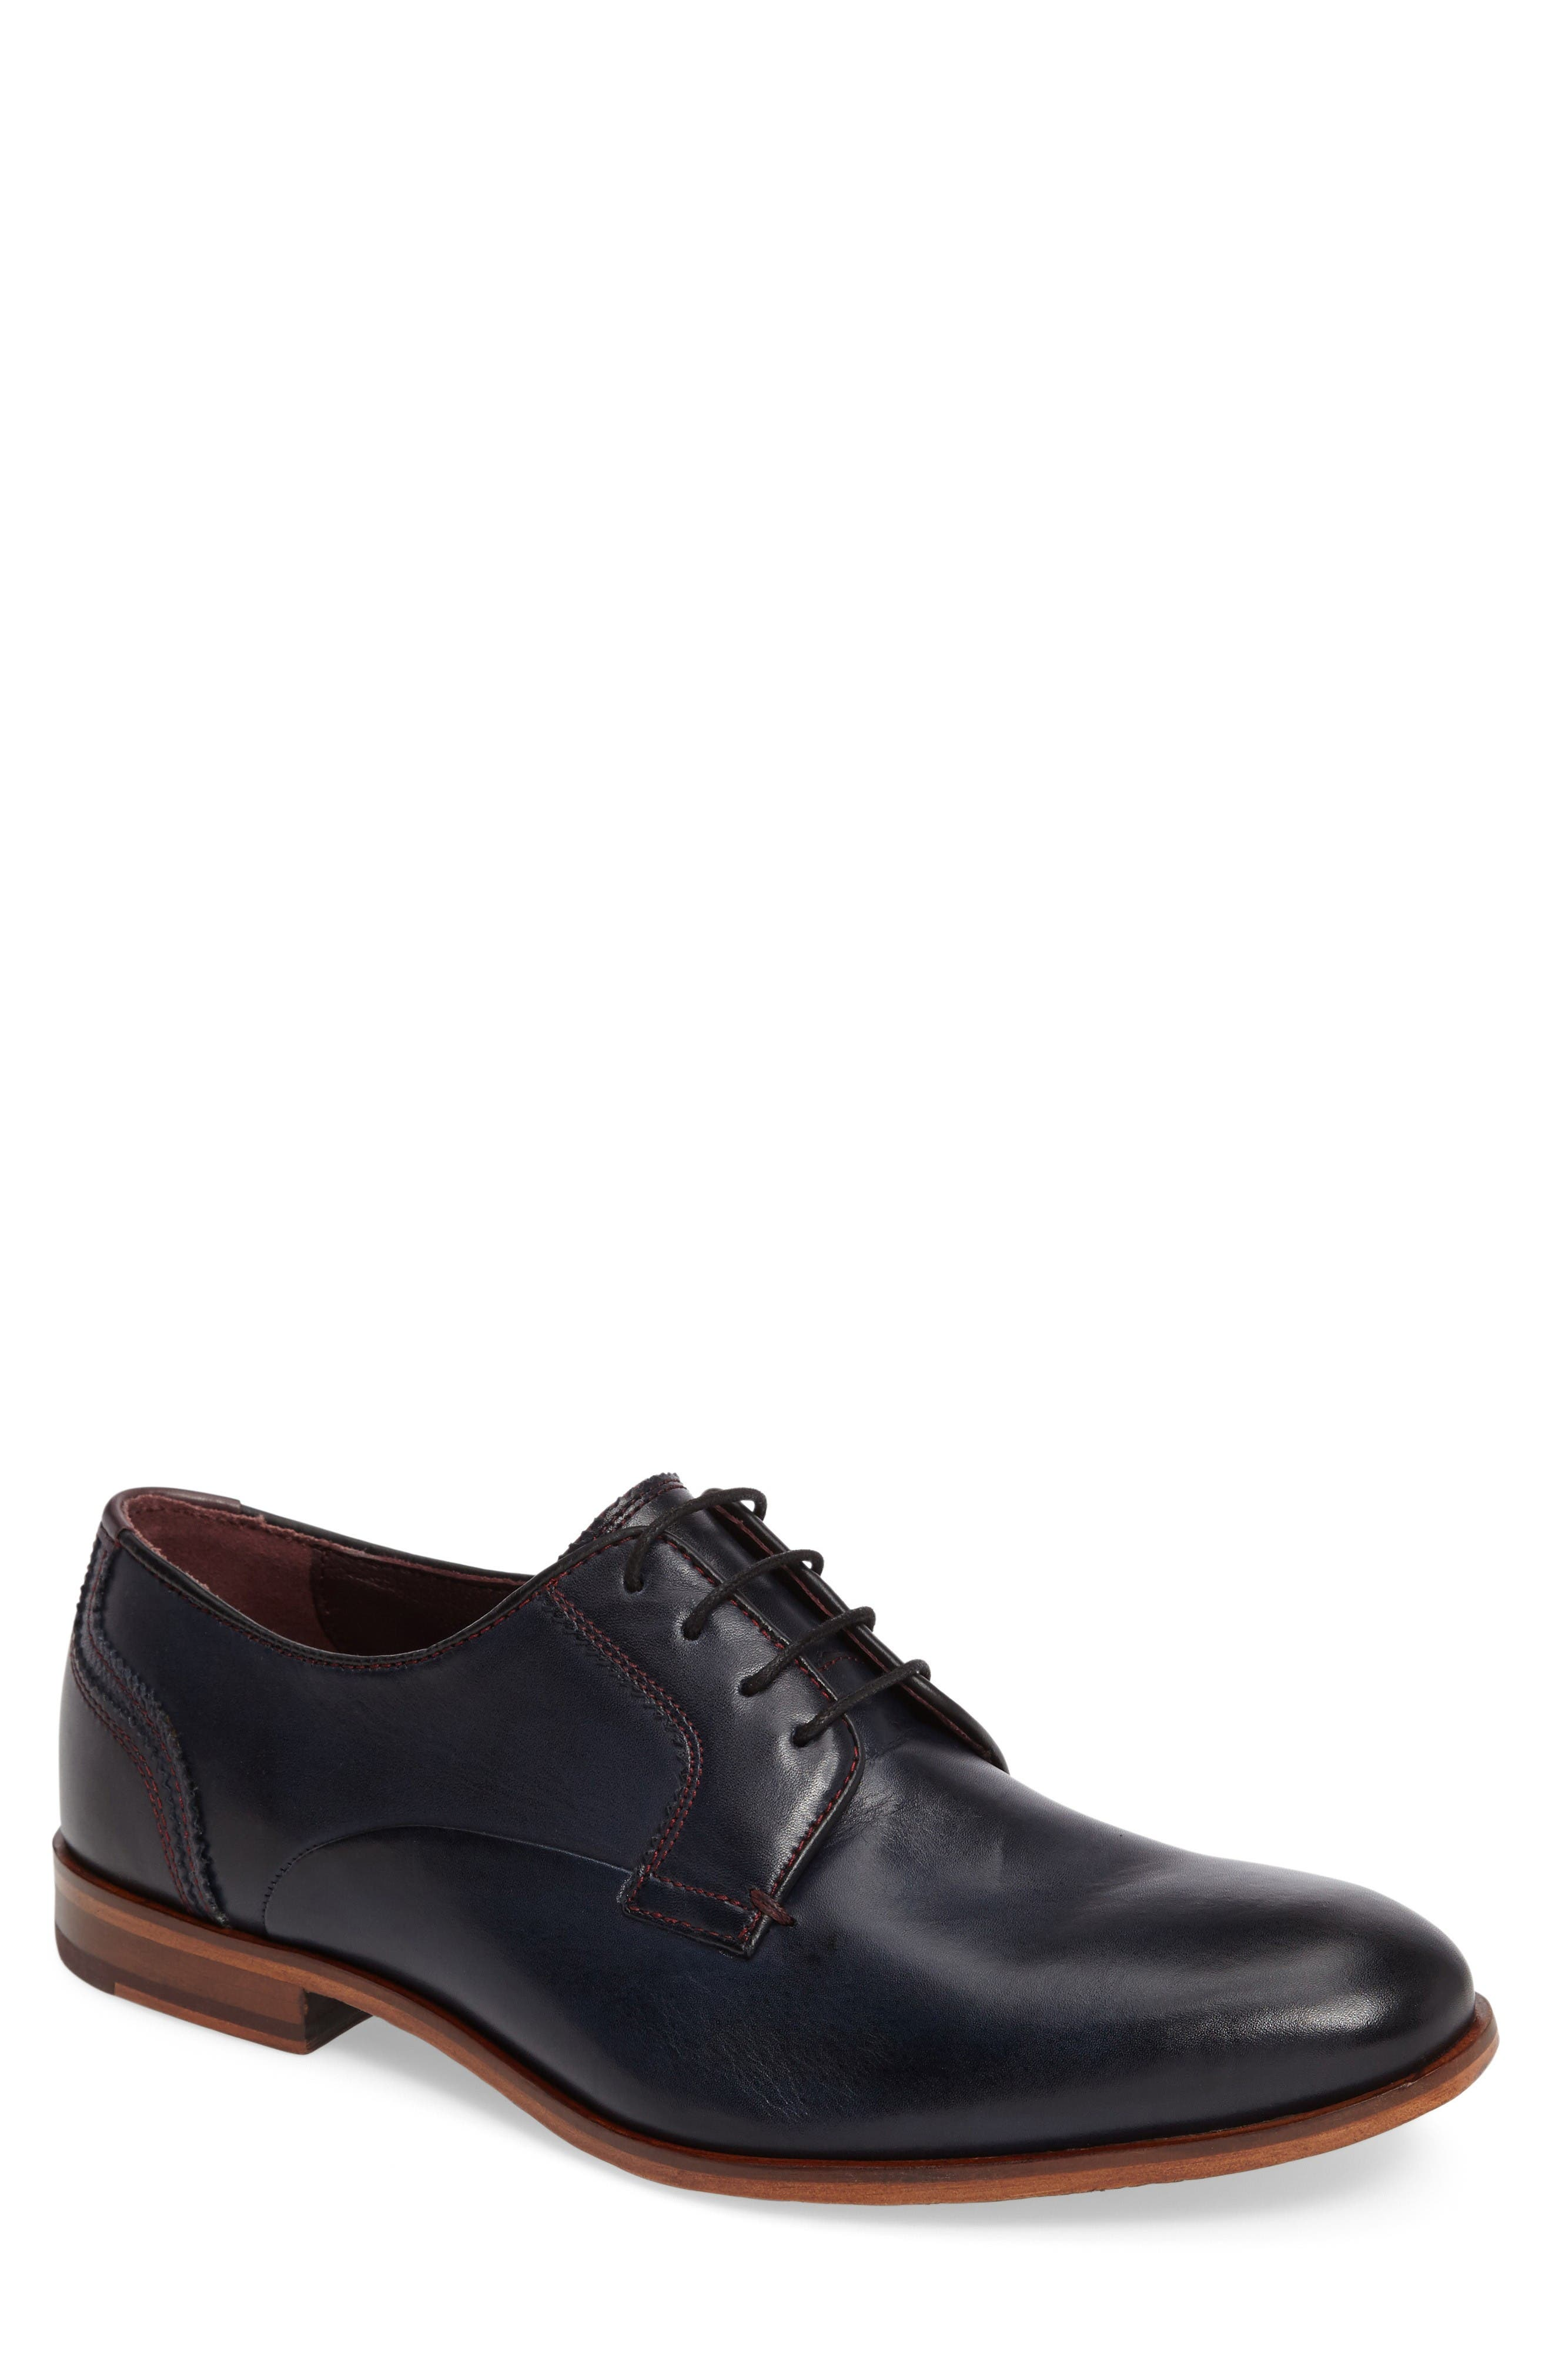 TED BAKER LONDON Iront Plain Toe Derby